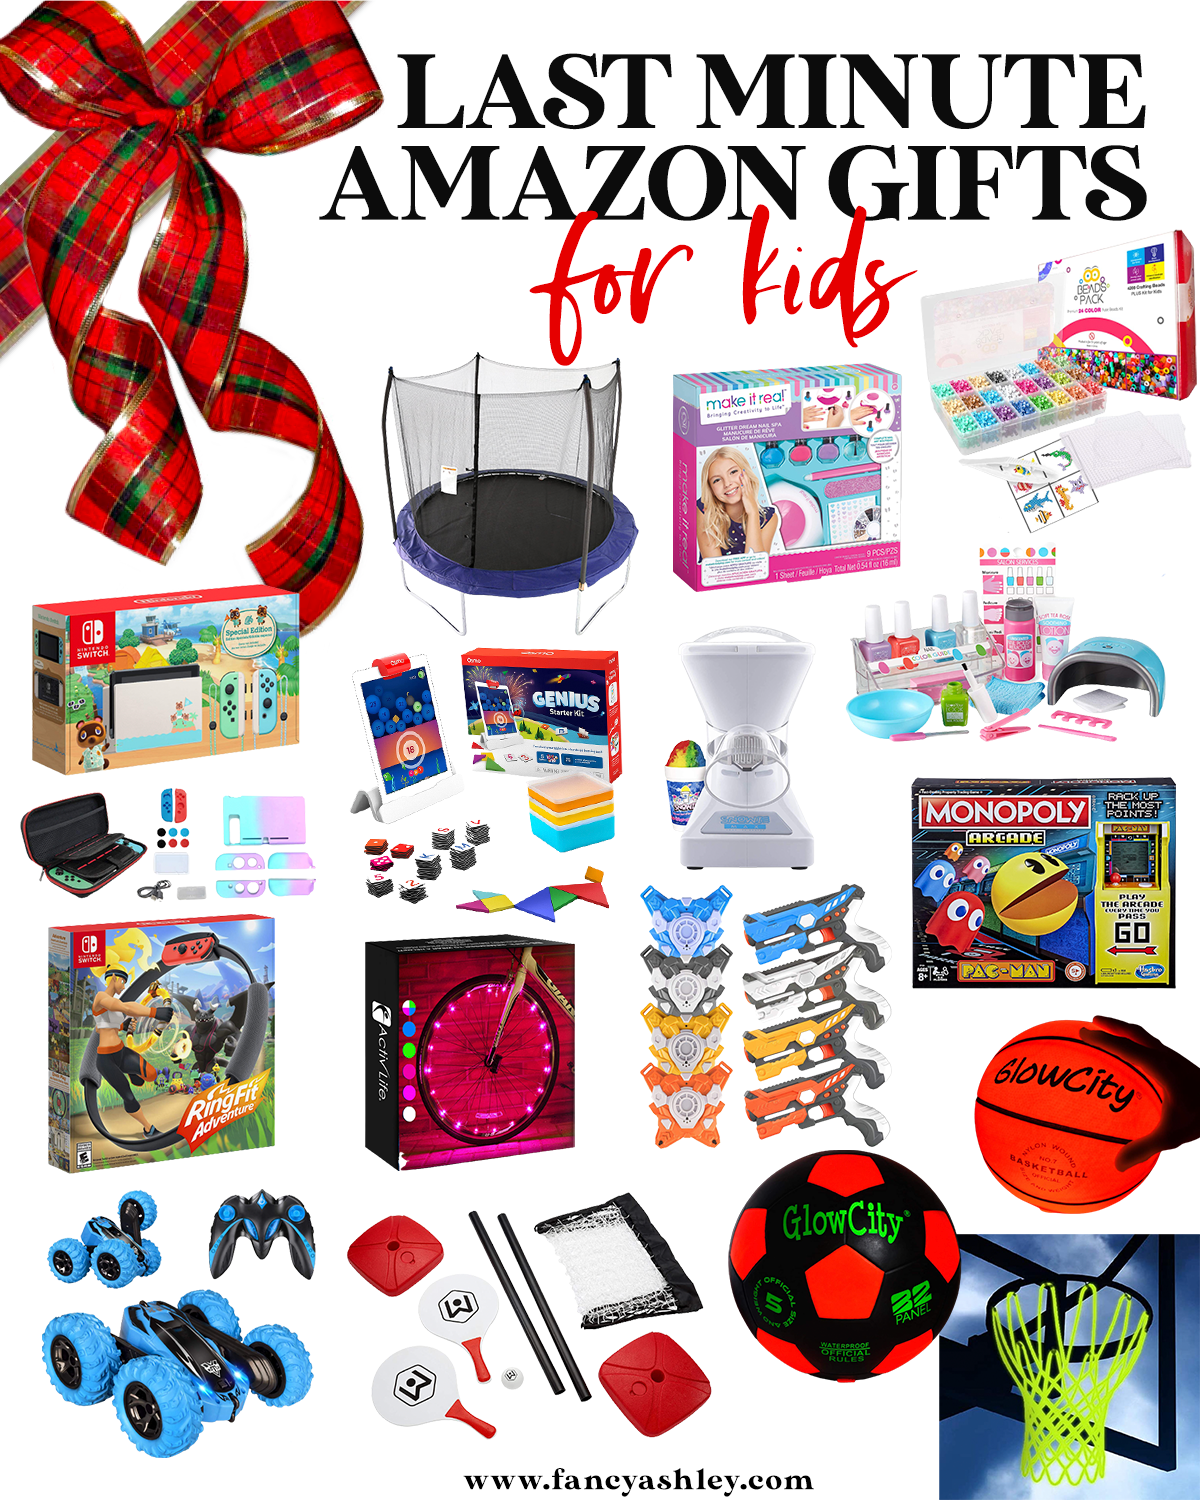 Last Minute Gifts from Amazon by popular Houston life and style blog, Fancy Ashley: collage image of a trampoline, glow city basket ball, glow city soccer ball, glow in the dark basket ball net, remote control car, snow cone machine, laser tag set, bike tire lights, manicure kit, pac man monopoly, beads, table ping pong, Nintendo Switch and Genius starter kit.